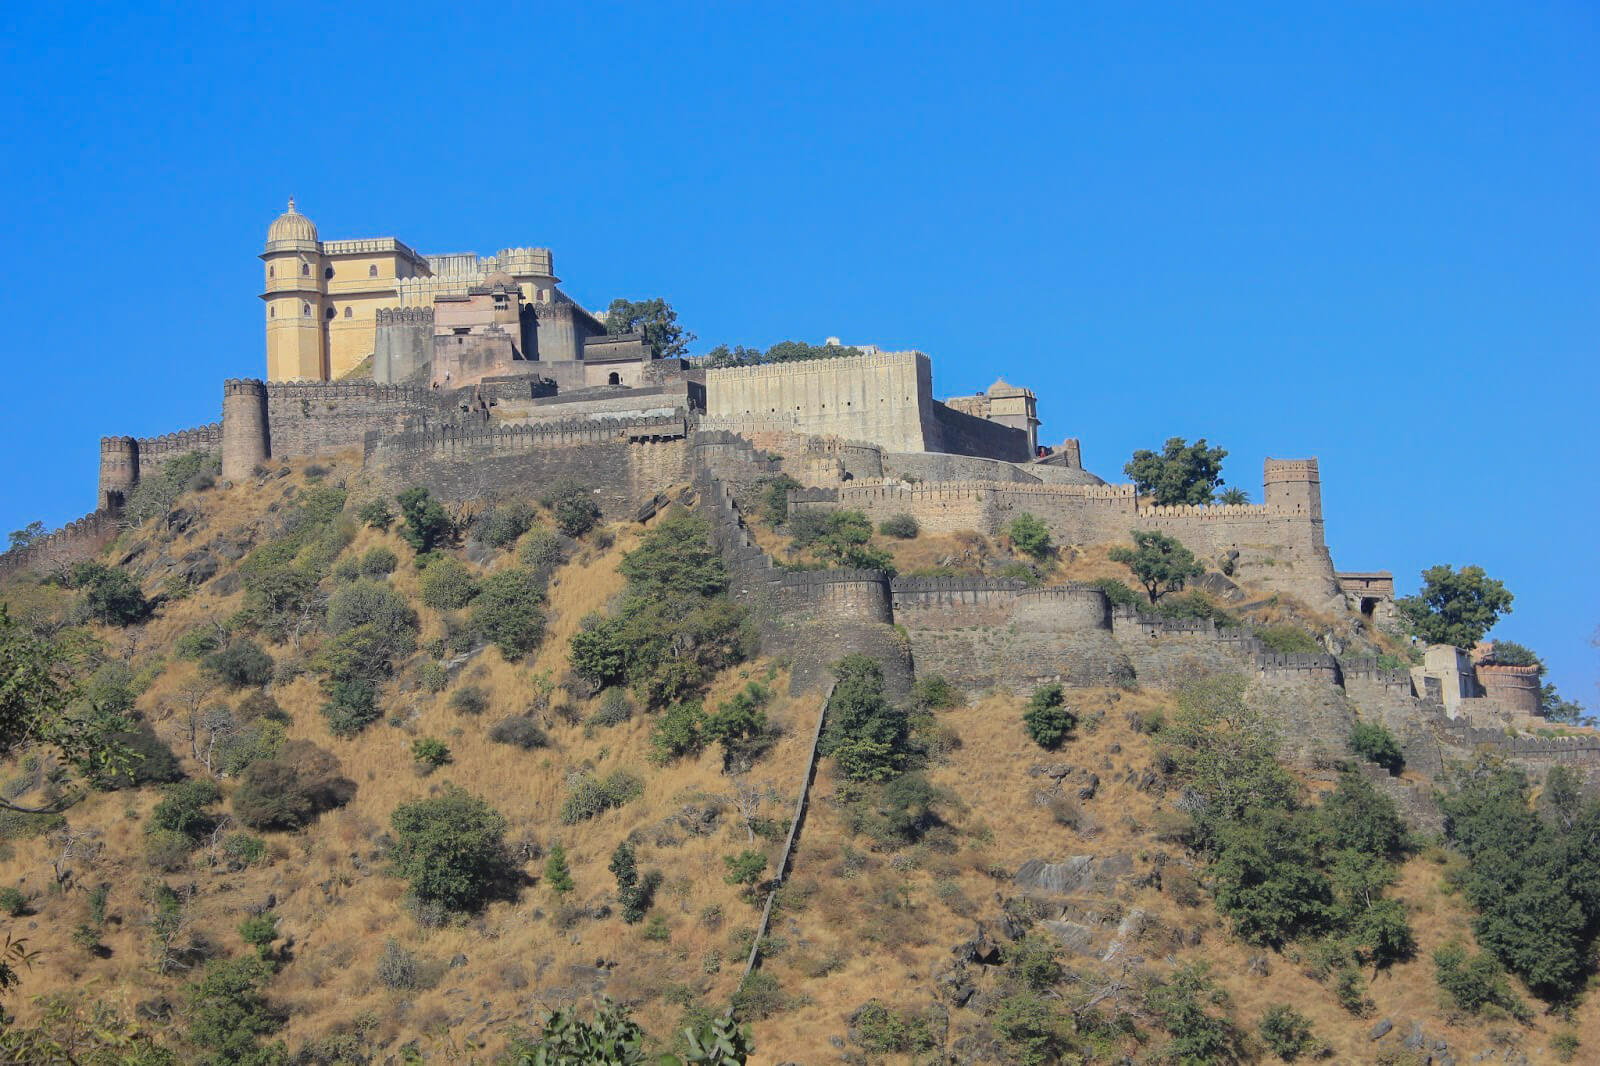 Badal Mahal, the palace inside built at the highest point inside the massive Kumbhalgarh Fort in Rajasthan, India